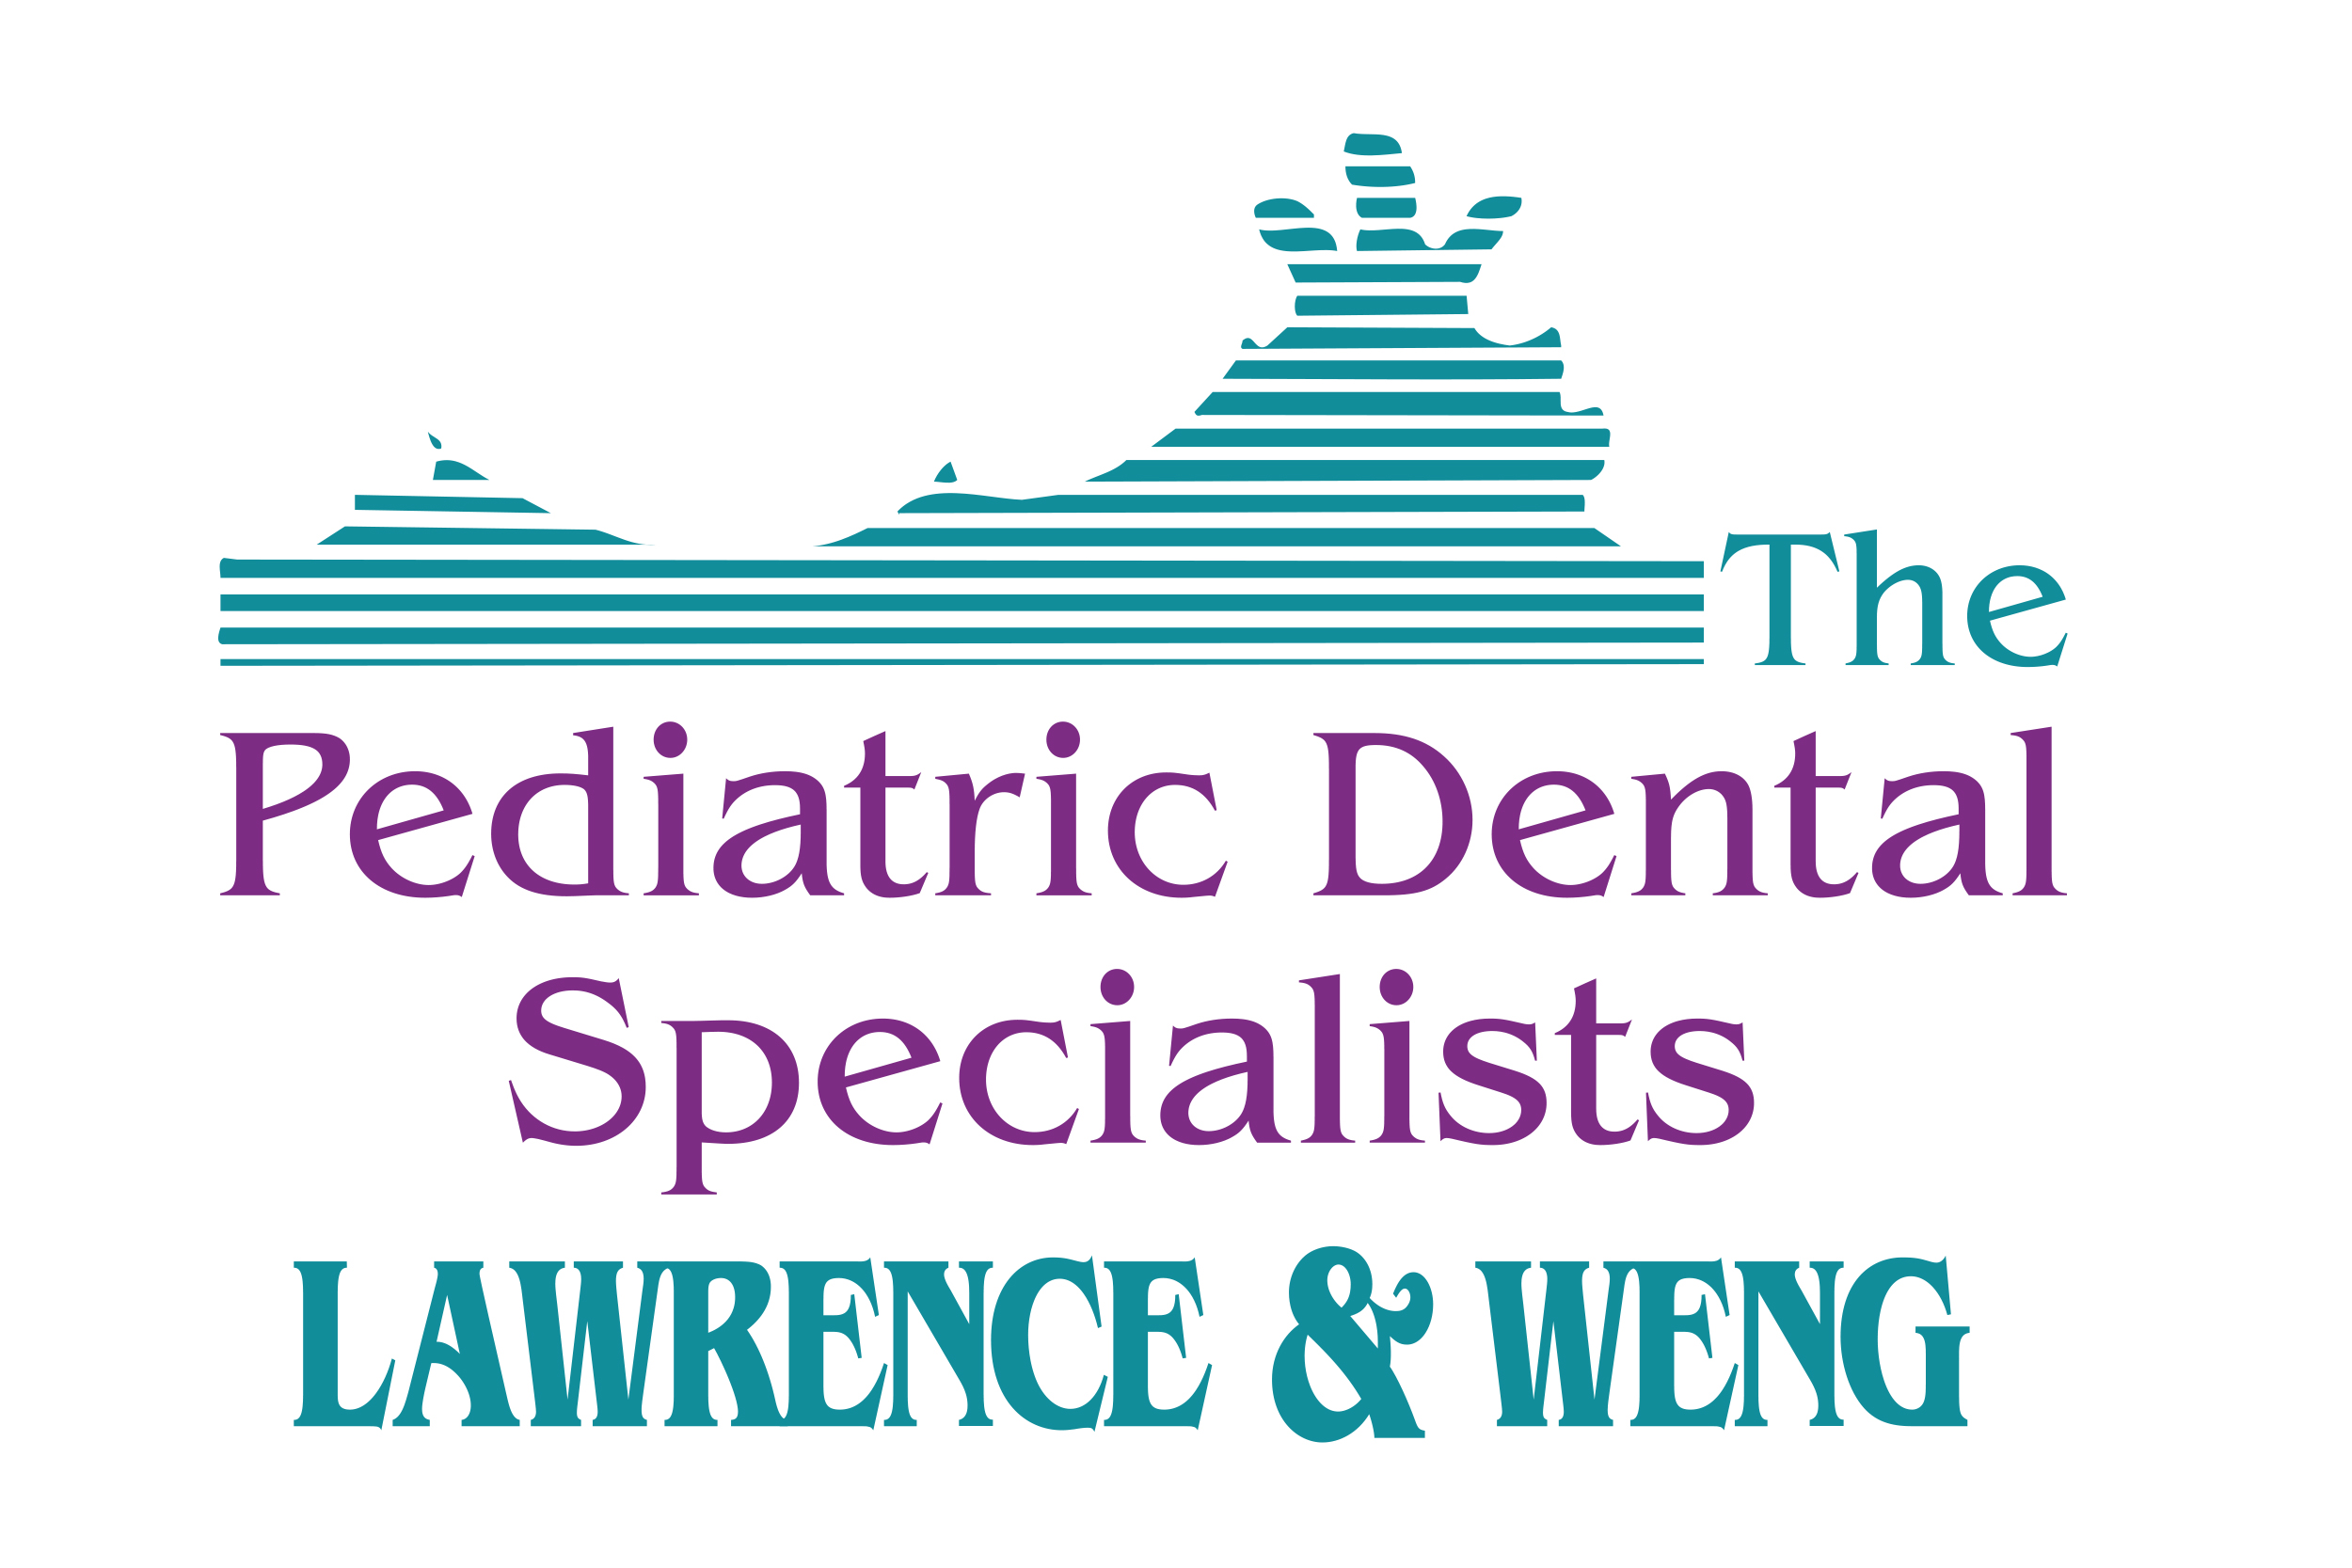 the pediatric dental specialists logo